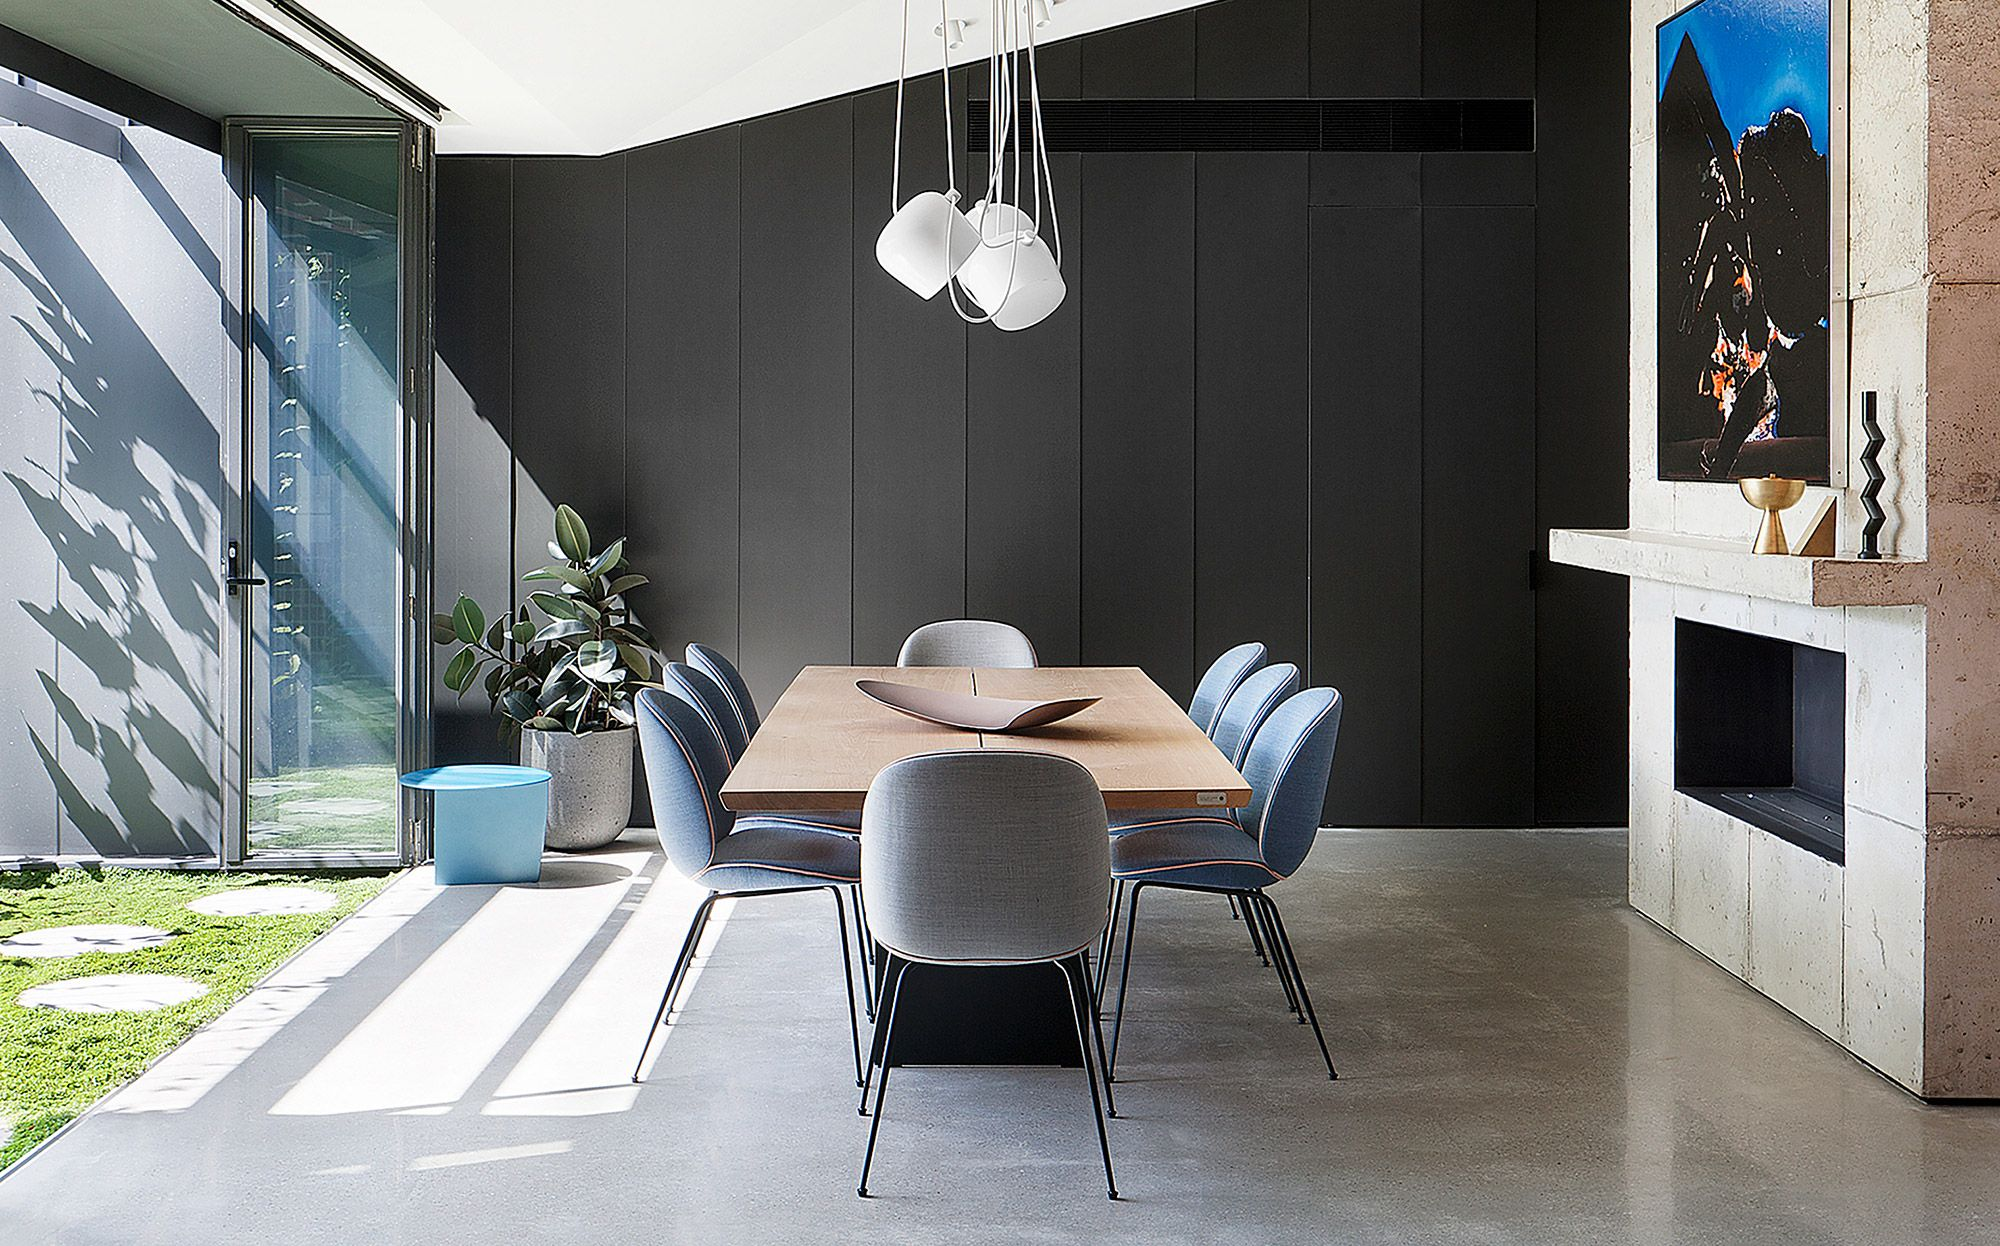 Mim Design focused on creating whimsical curated interiors with